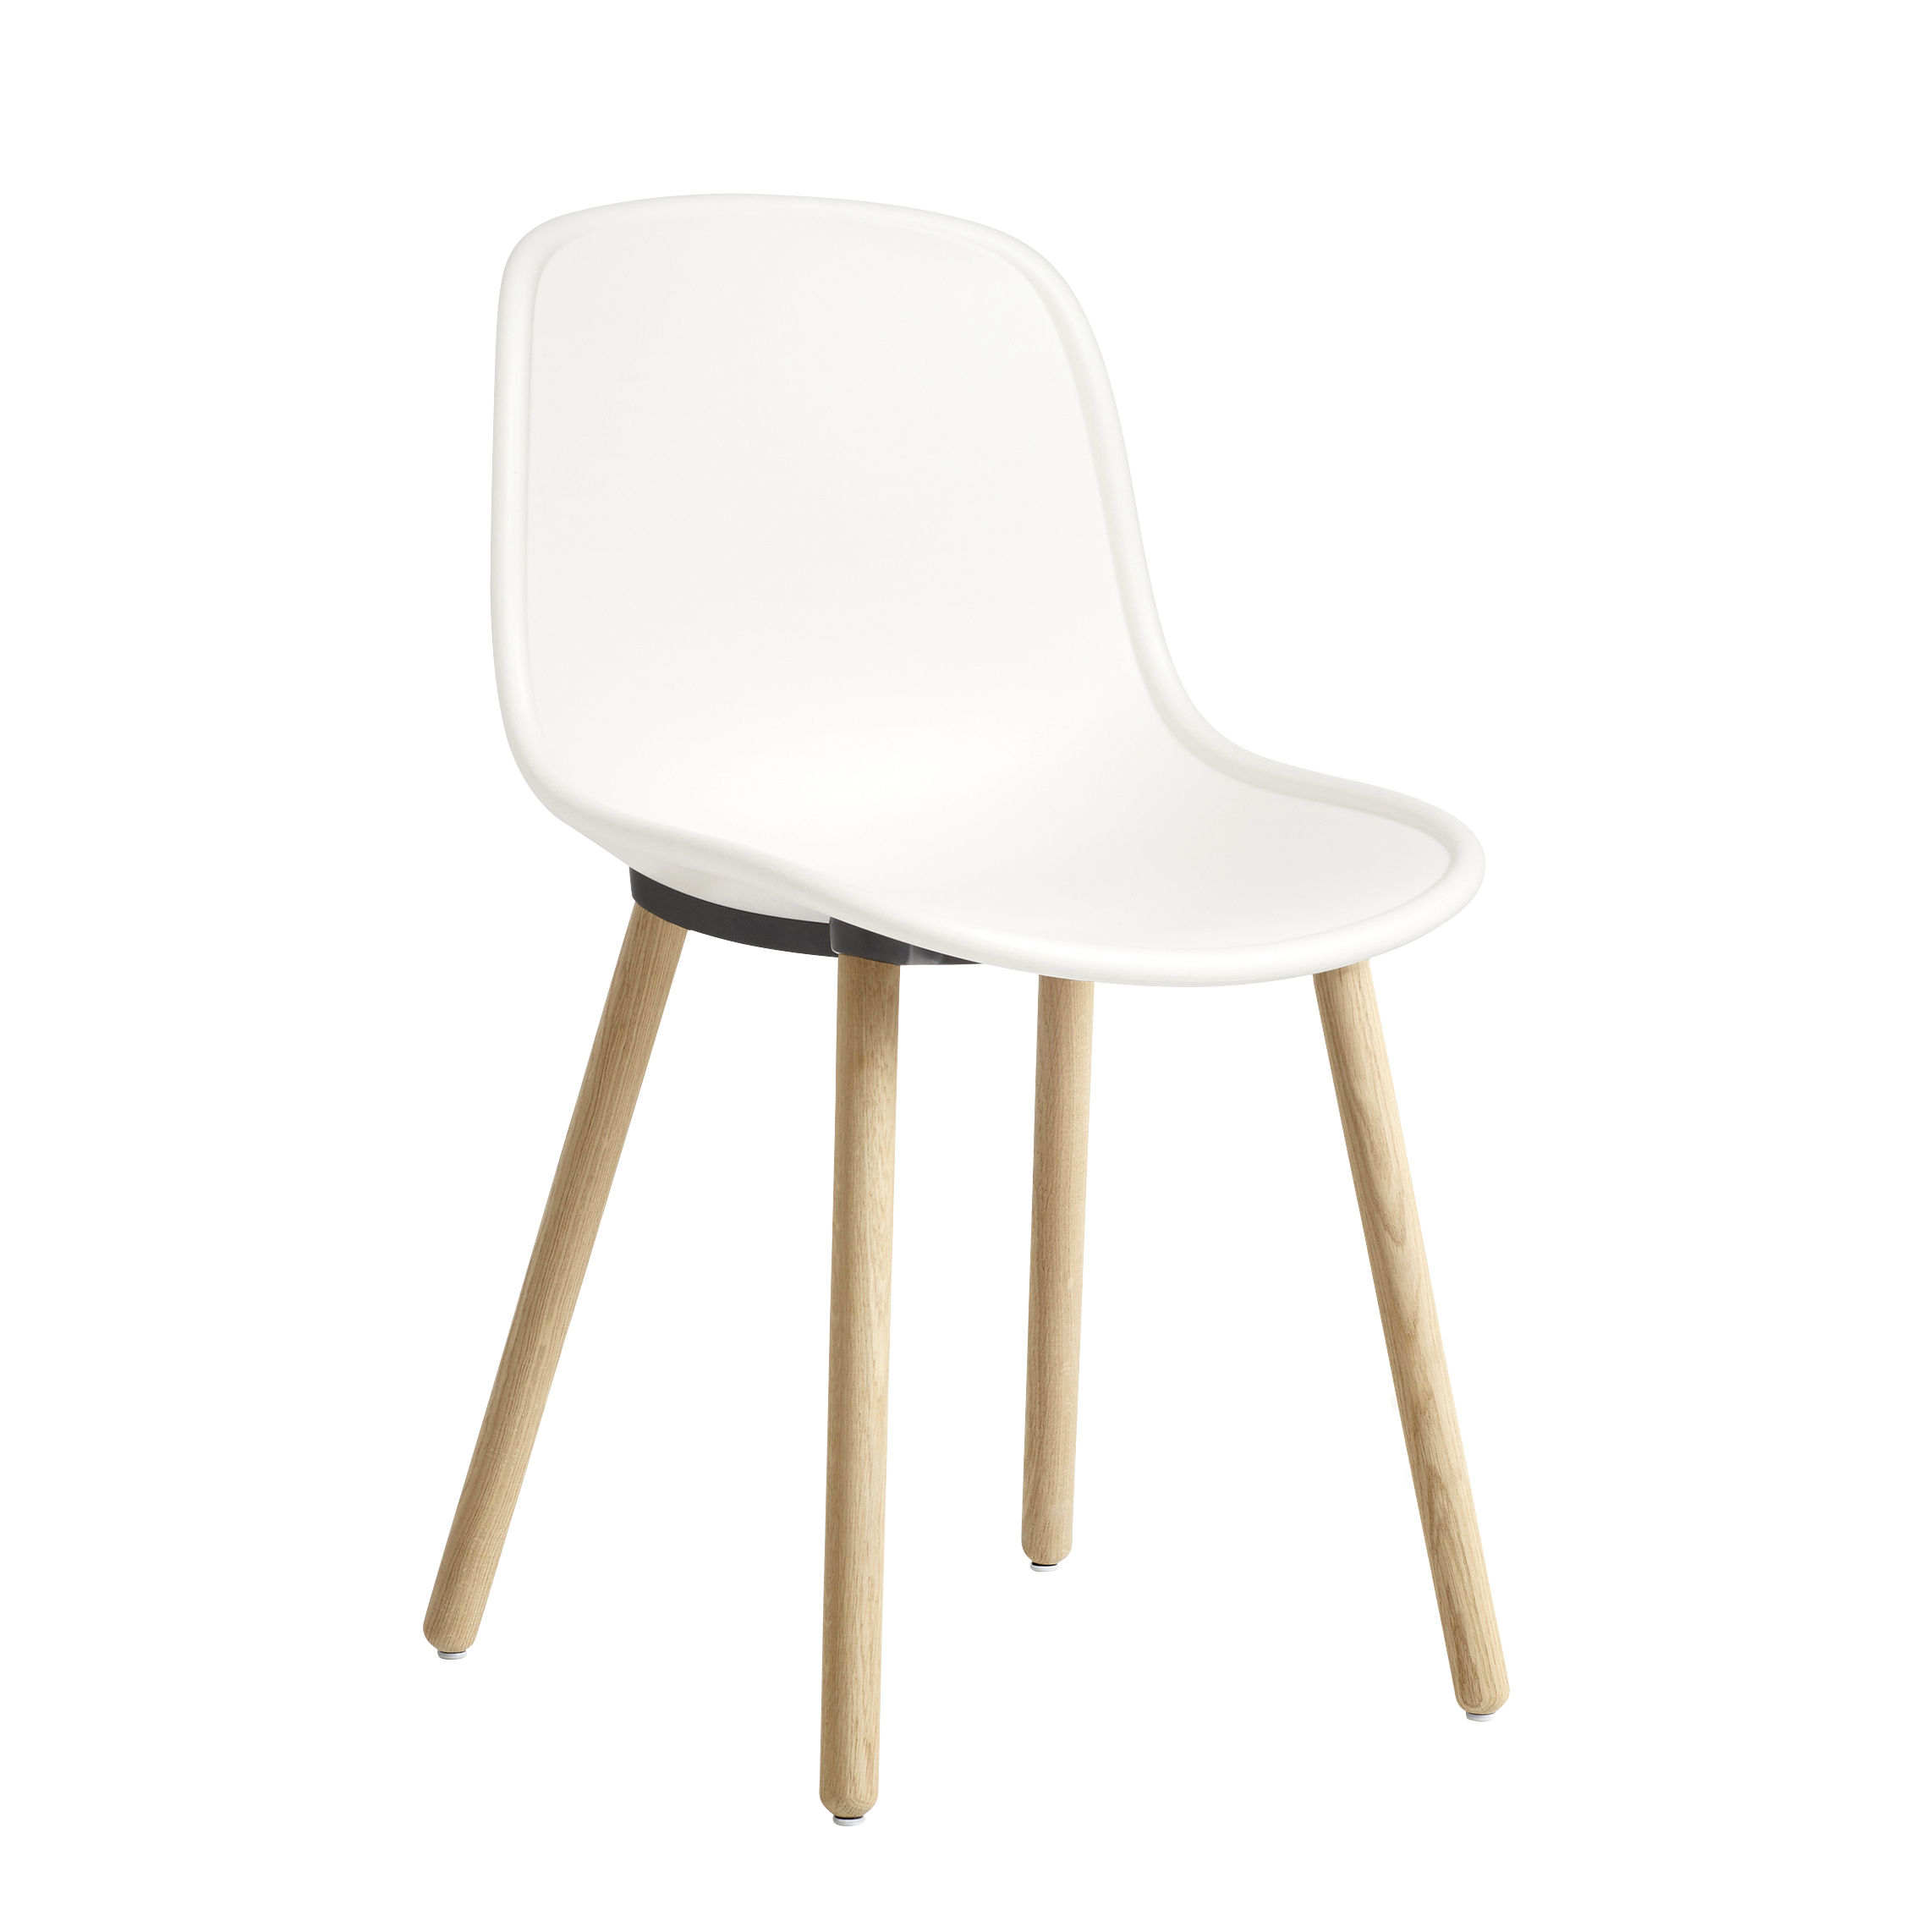 Furniture - Chairs - Neu 12 Chair - / Plastic & wood with aluminium joint by Hay - Cream / Wooden legs - Aluminium, Polypropylene, Solid oak